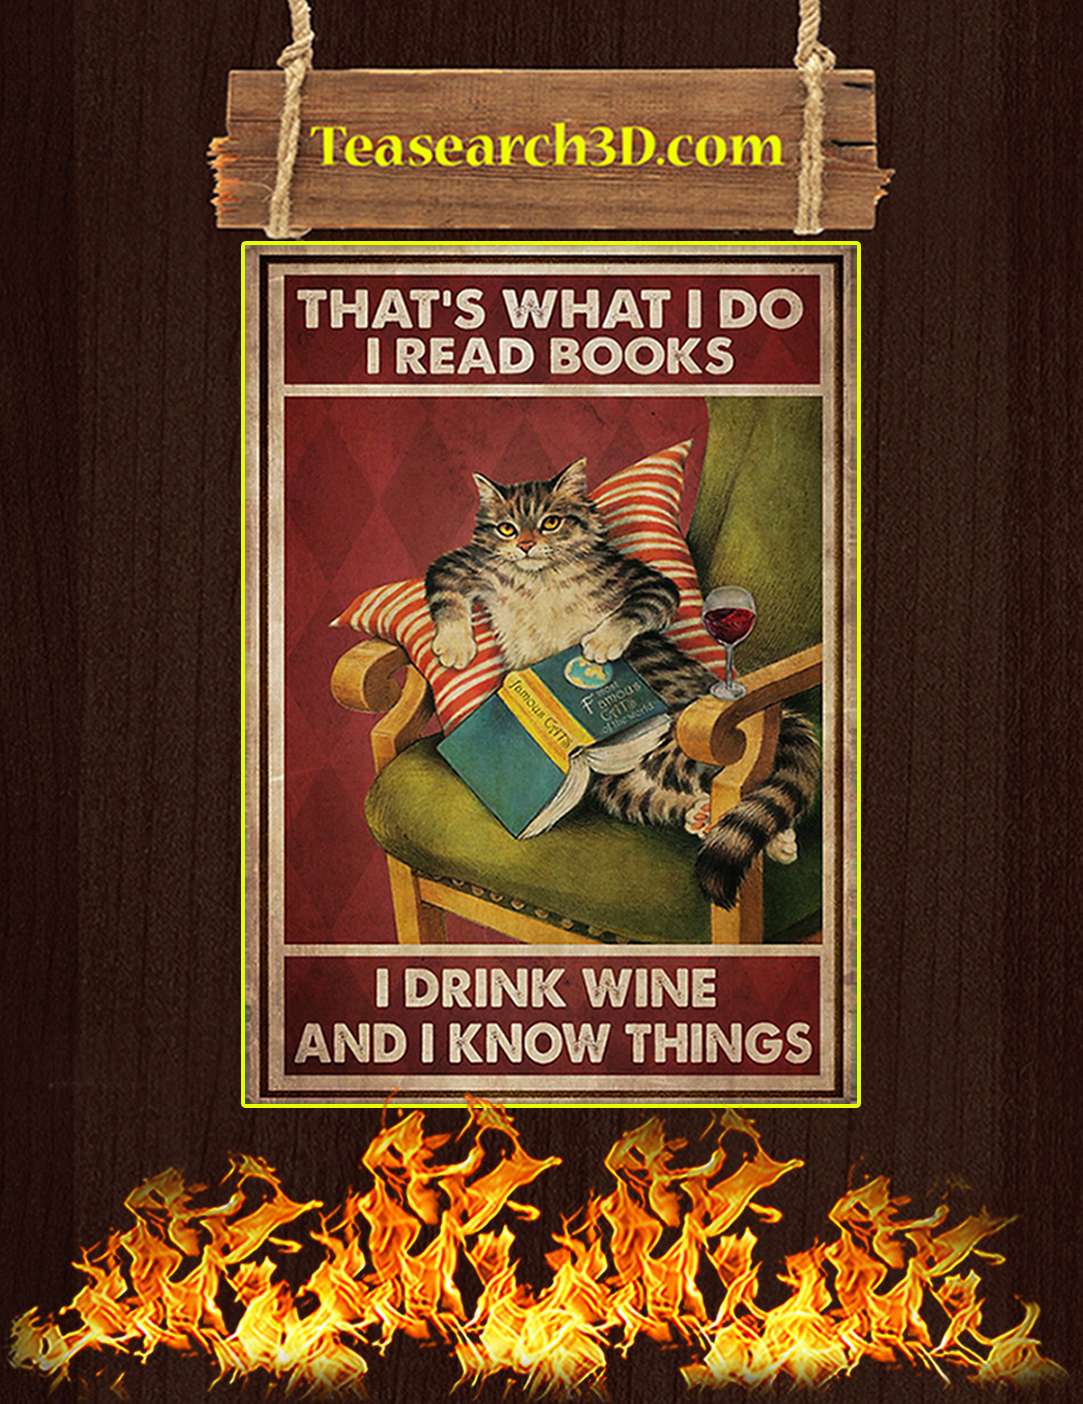 That's what I do I read books I drink wine and I know things cat poster A2